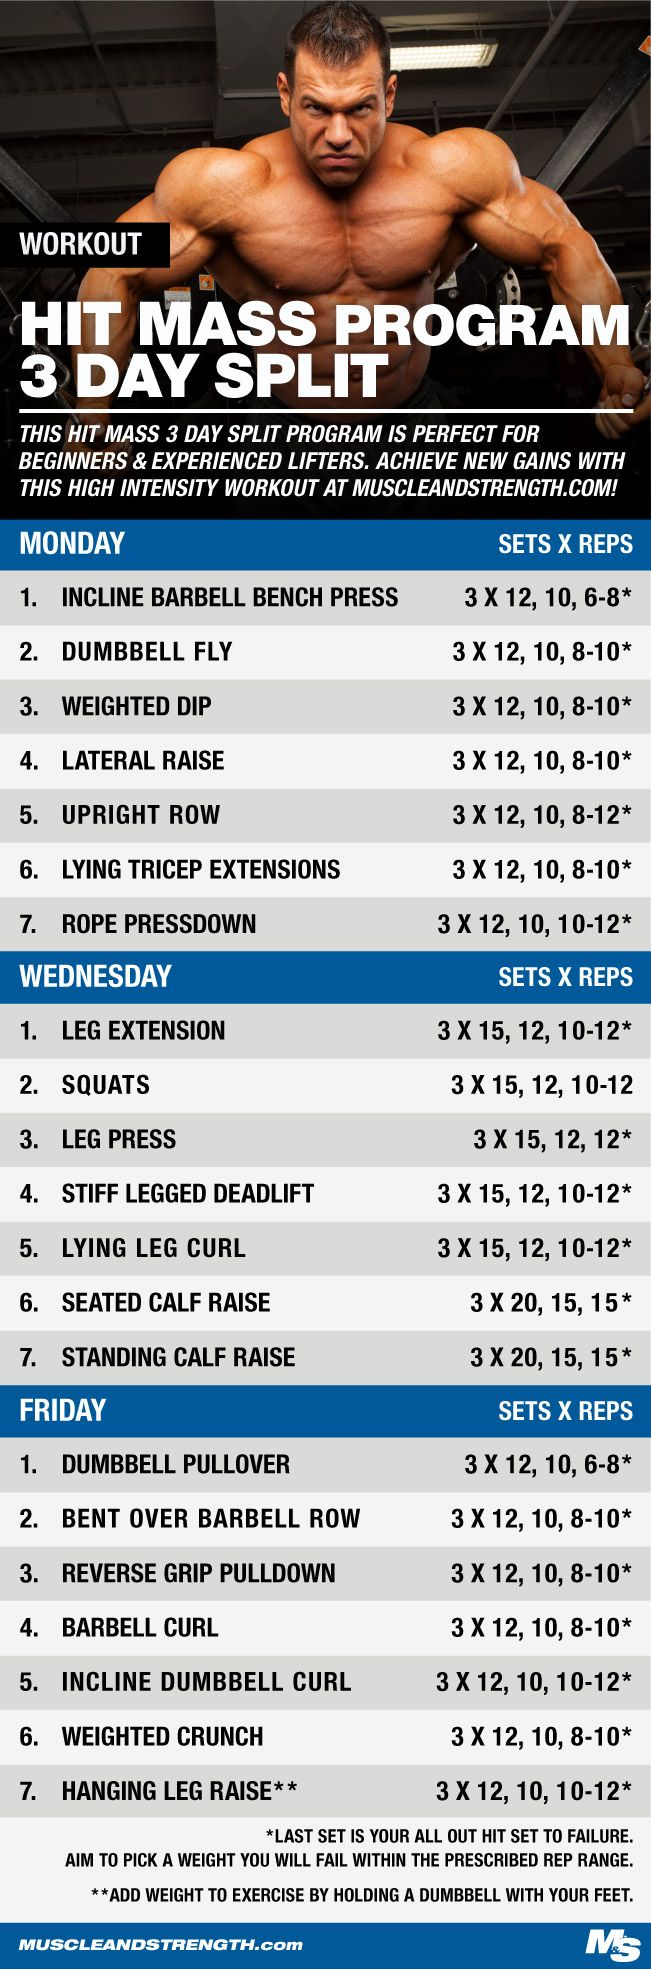 Achieve new gains with this high intensity workout. This HIT MASS 3 day split is perfect for beginners as well as lifters looking to bust through a plateau!